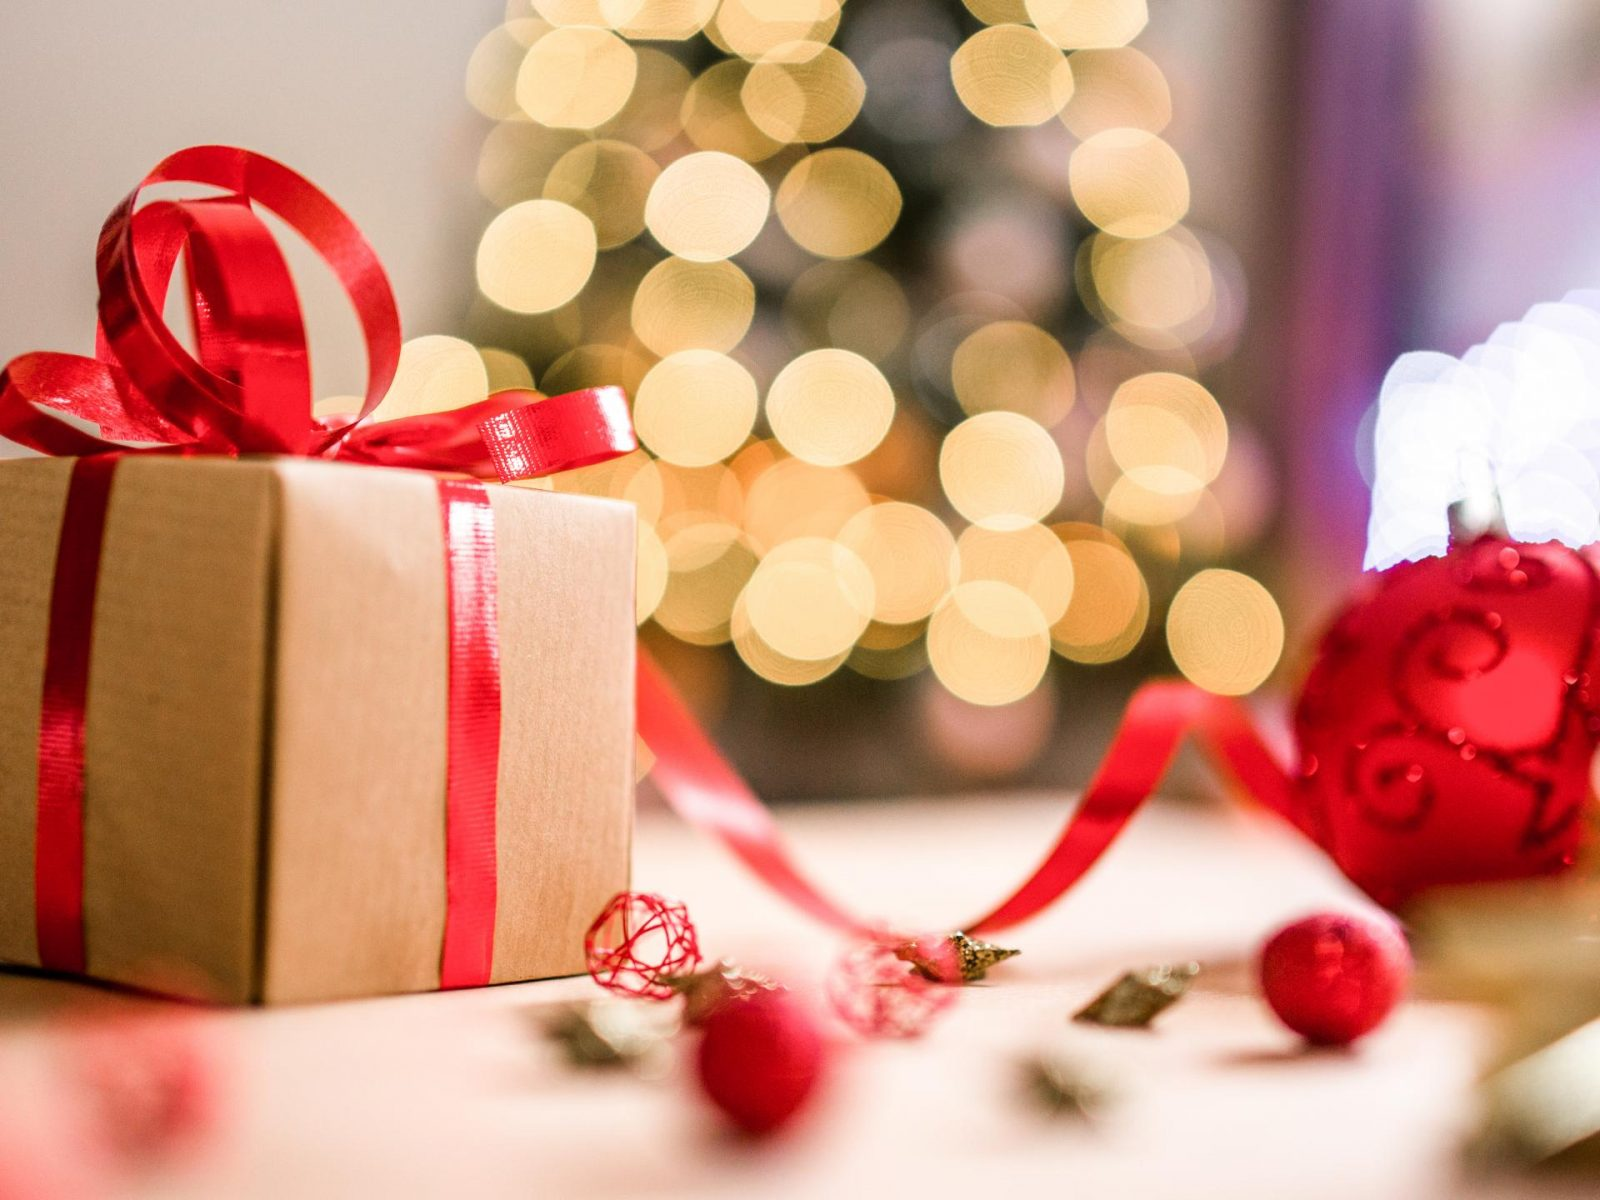 Last Minute Holiday Gift Guide for Her!